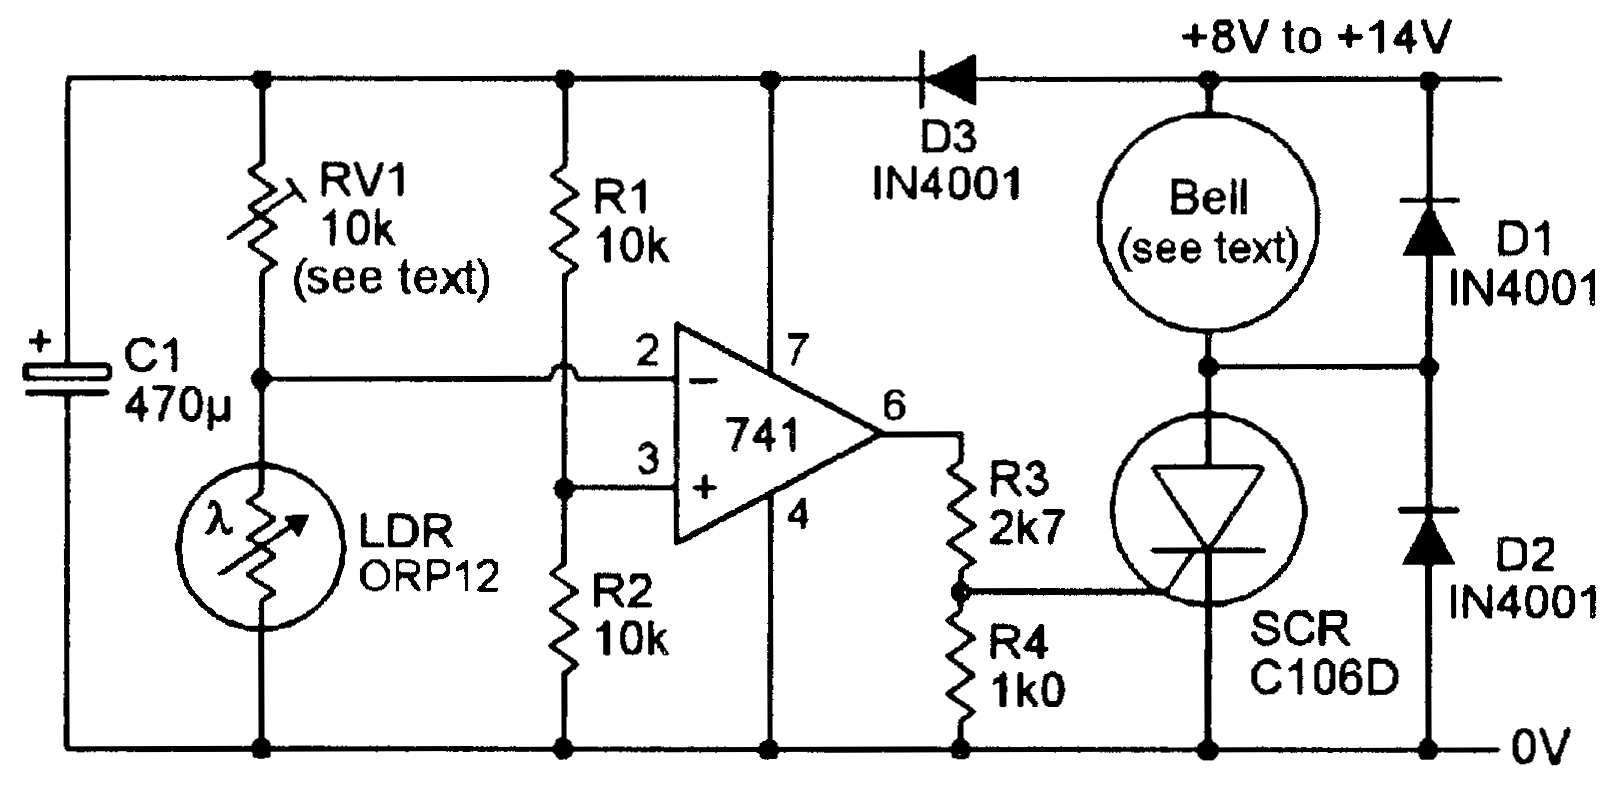 Light Sensitive Circuits Nuts Volts Magazine The Schematic Of Door Alarm Circuit A Bell Output Ldr